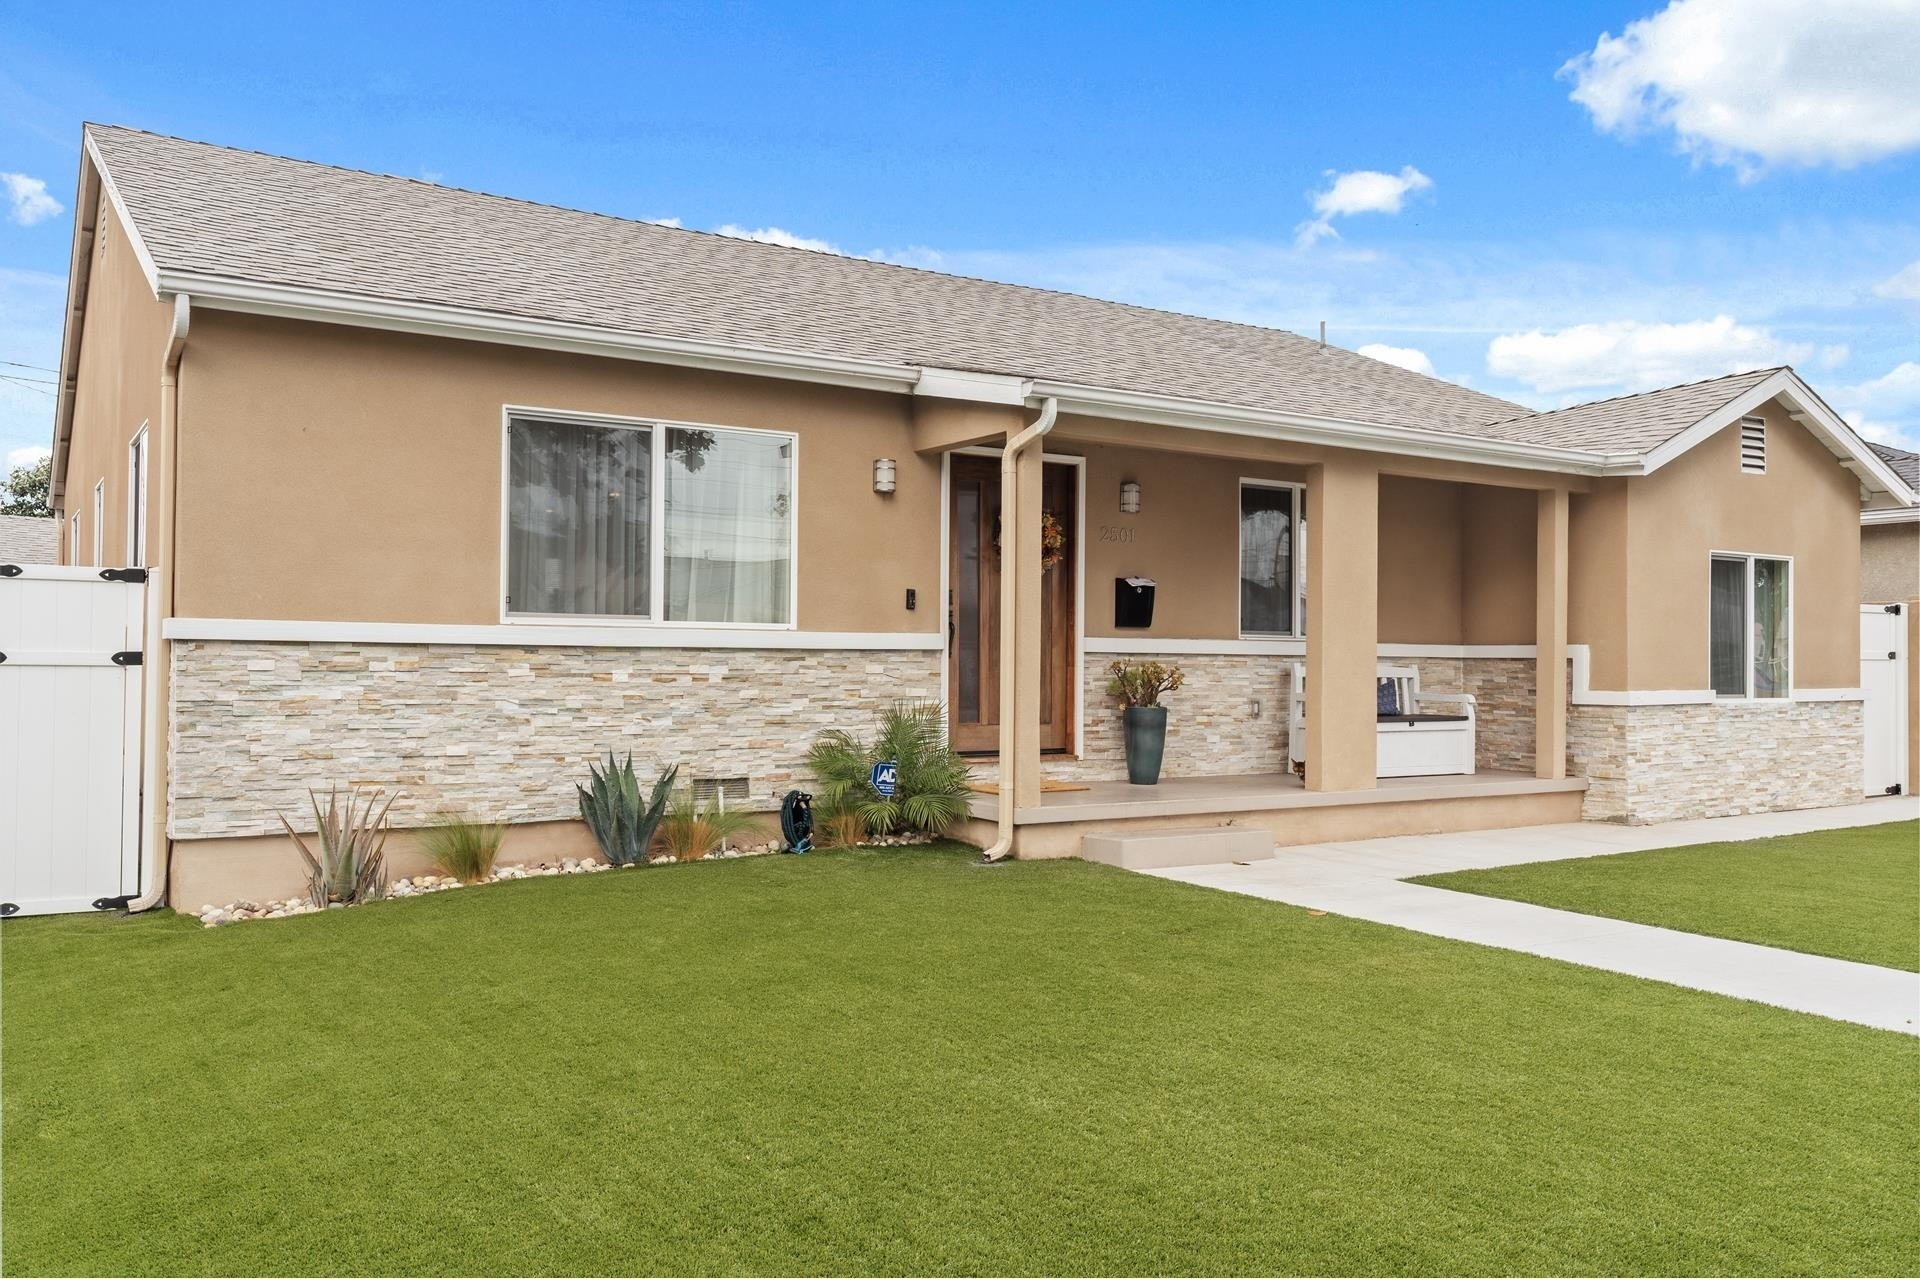 Single Family Home at North Redondo Beach, Redondo Beach